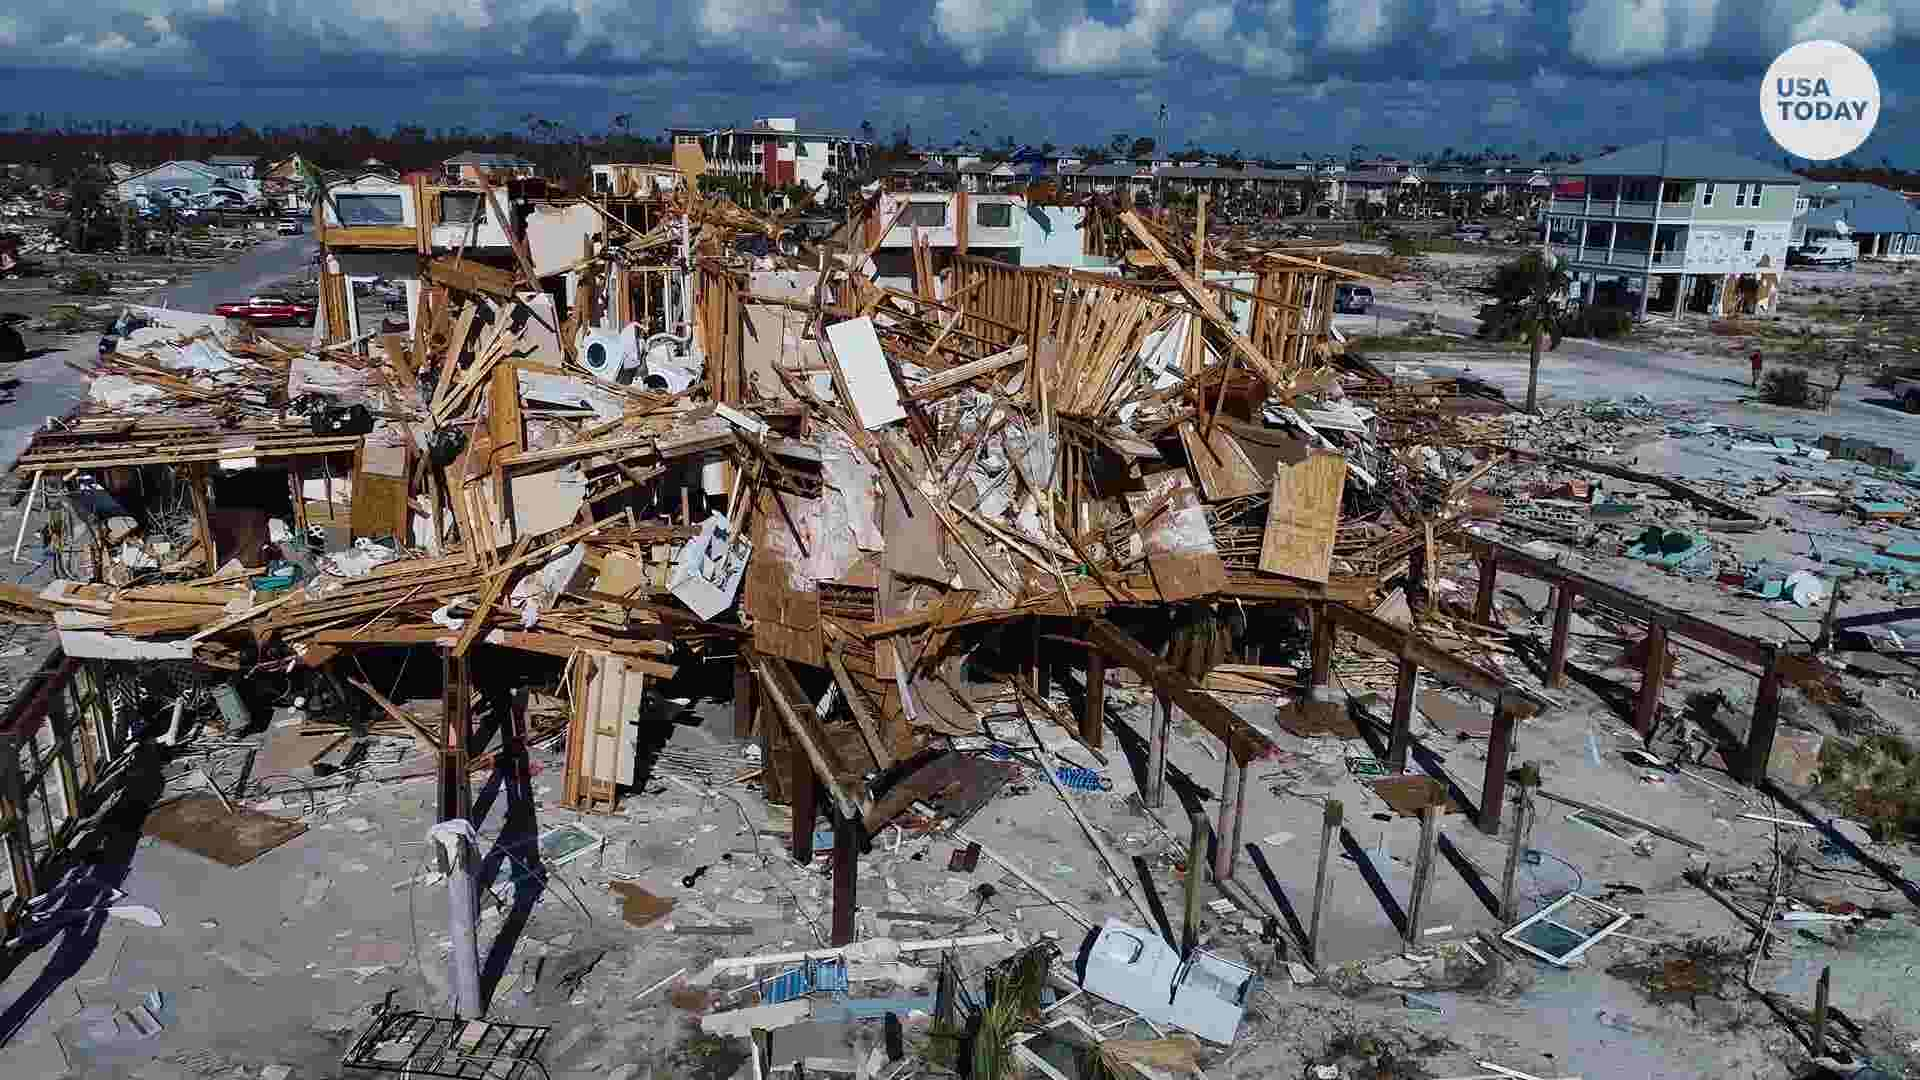 Hurricane Michael left Mexico Beach in shambles